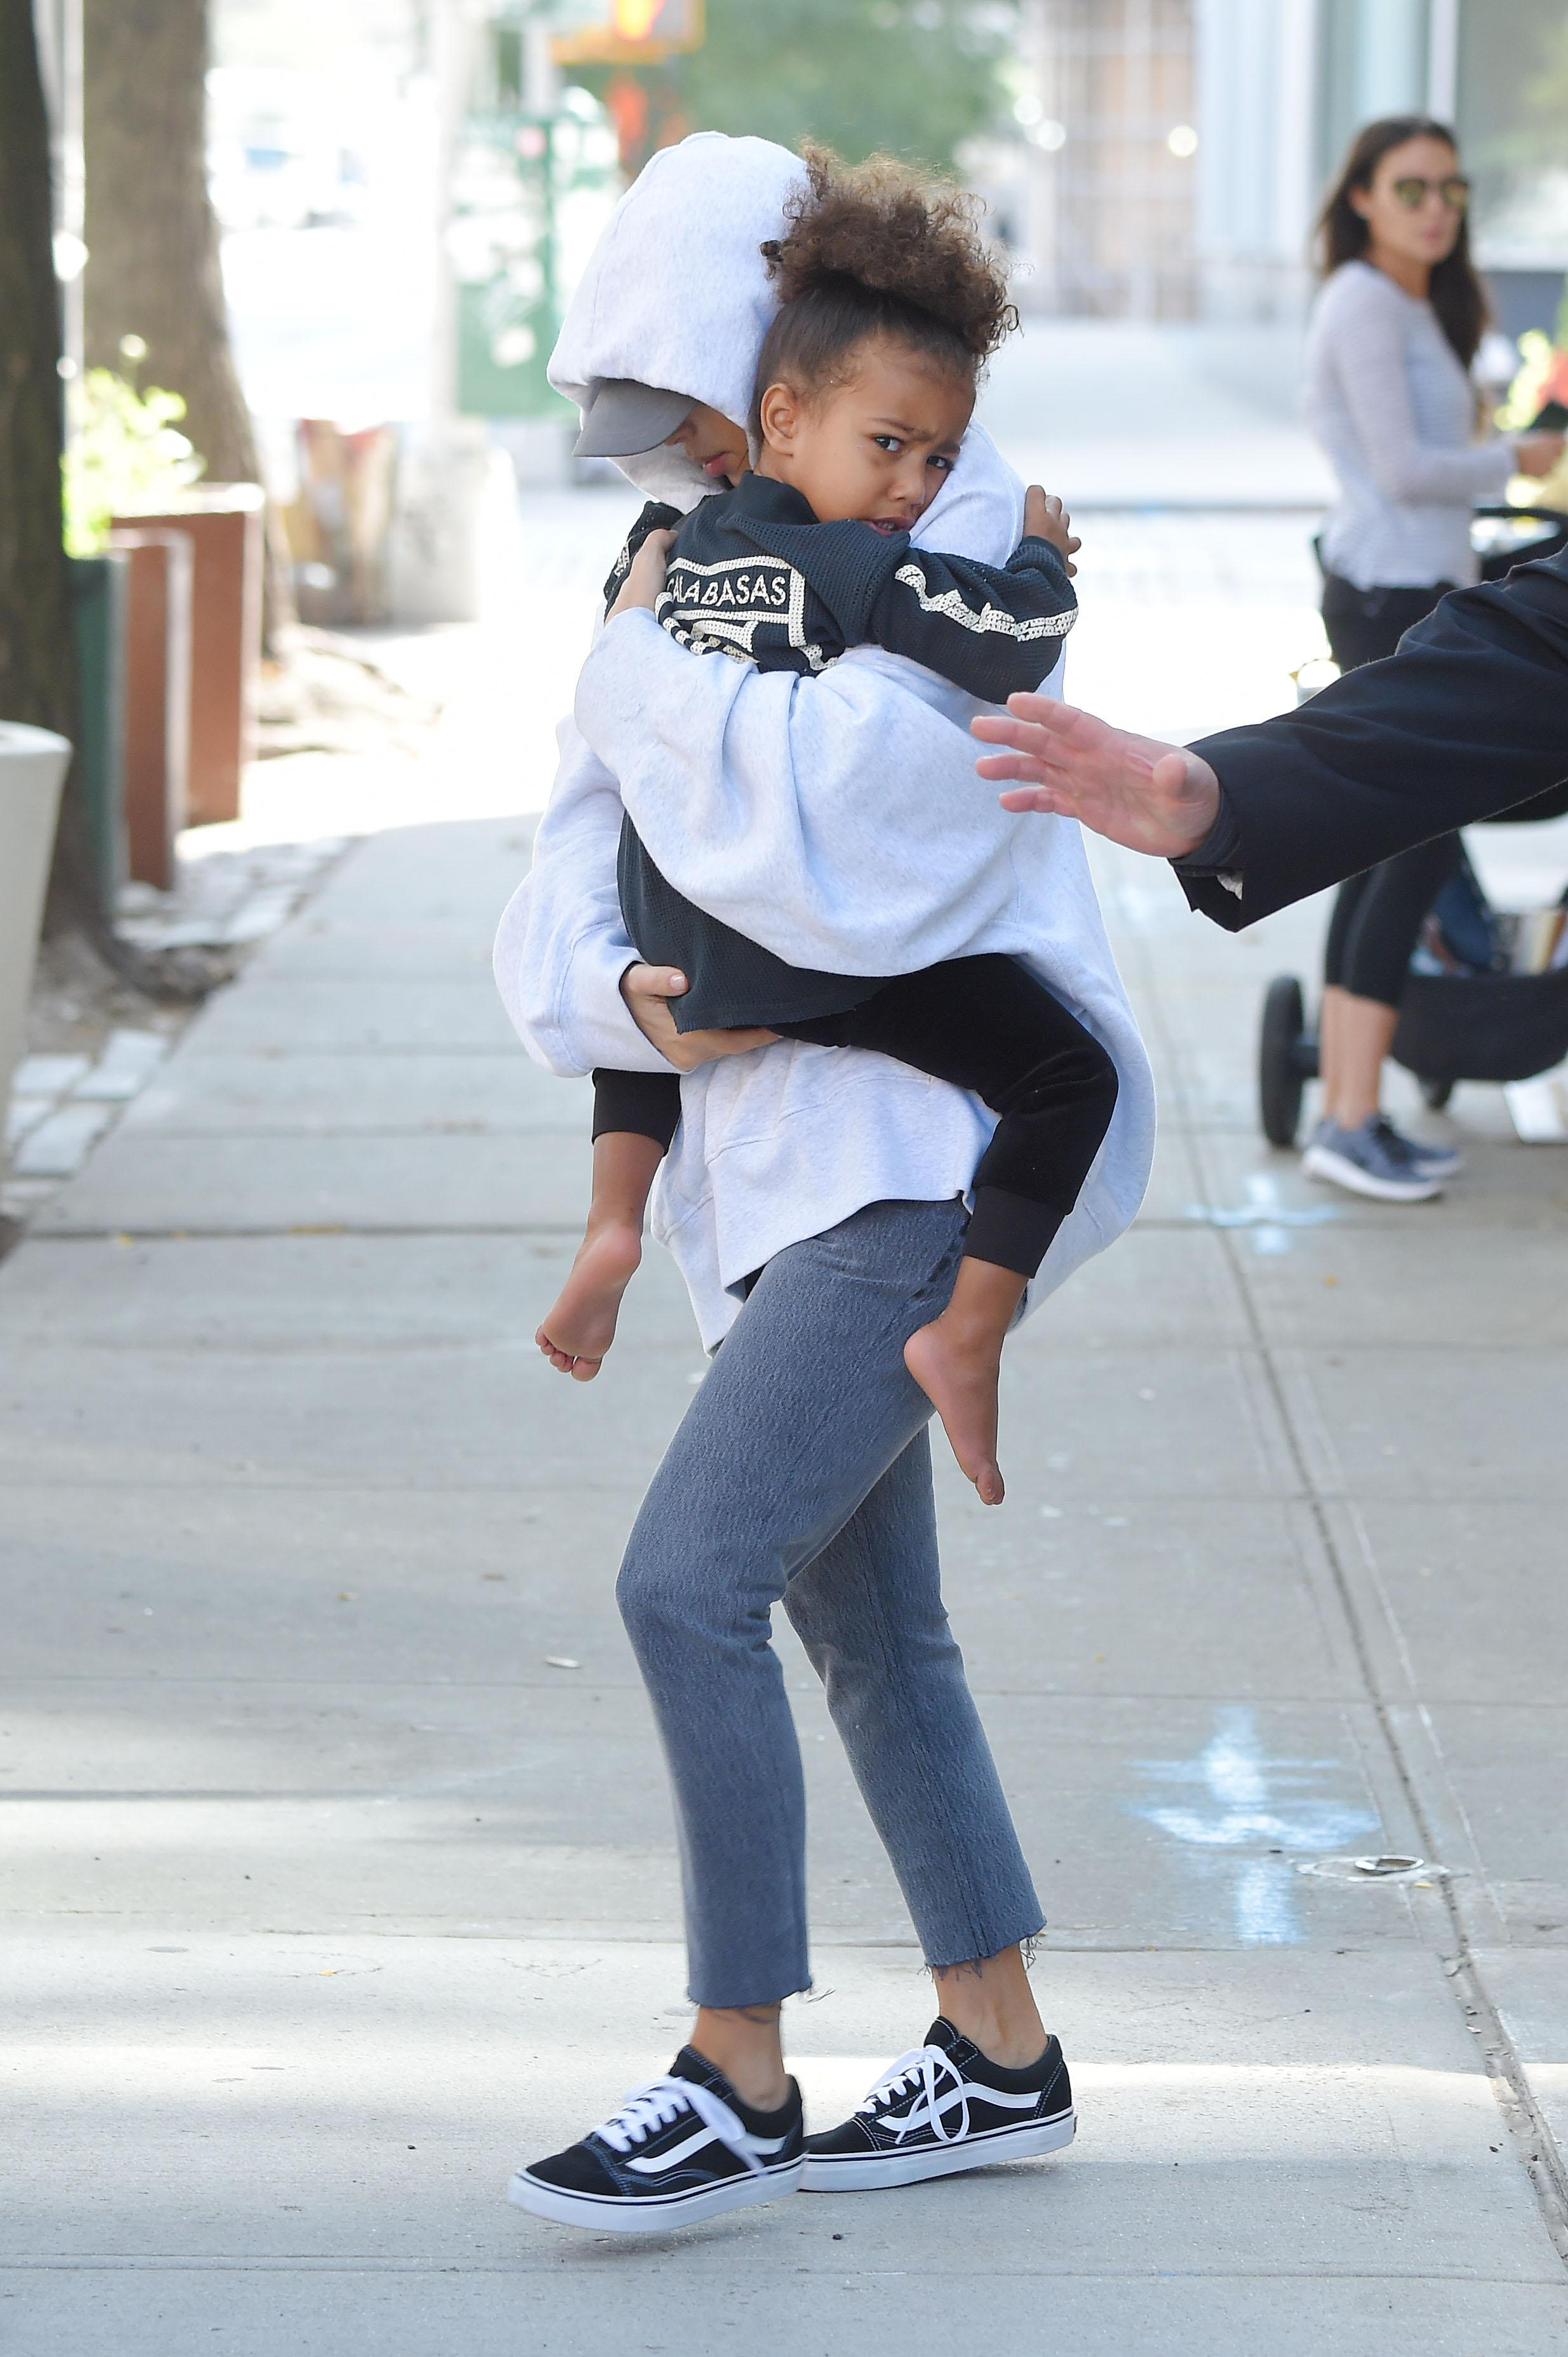 Kim Kardashian and baby North West steps out  of ther AirBnB apartment for the first time after million dollar heist of her jewelry on OCTOBER 06, 2016 in New York City, New York